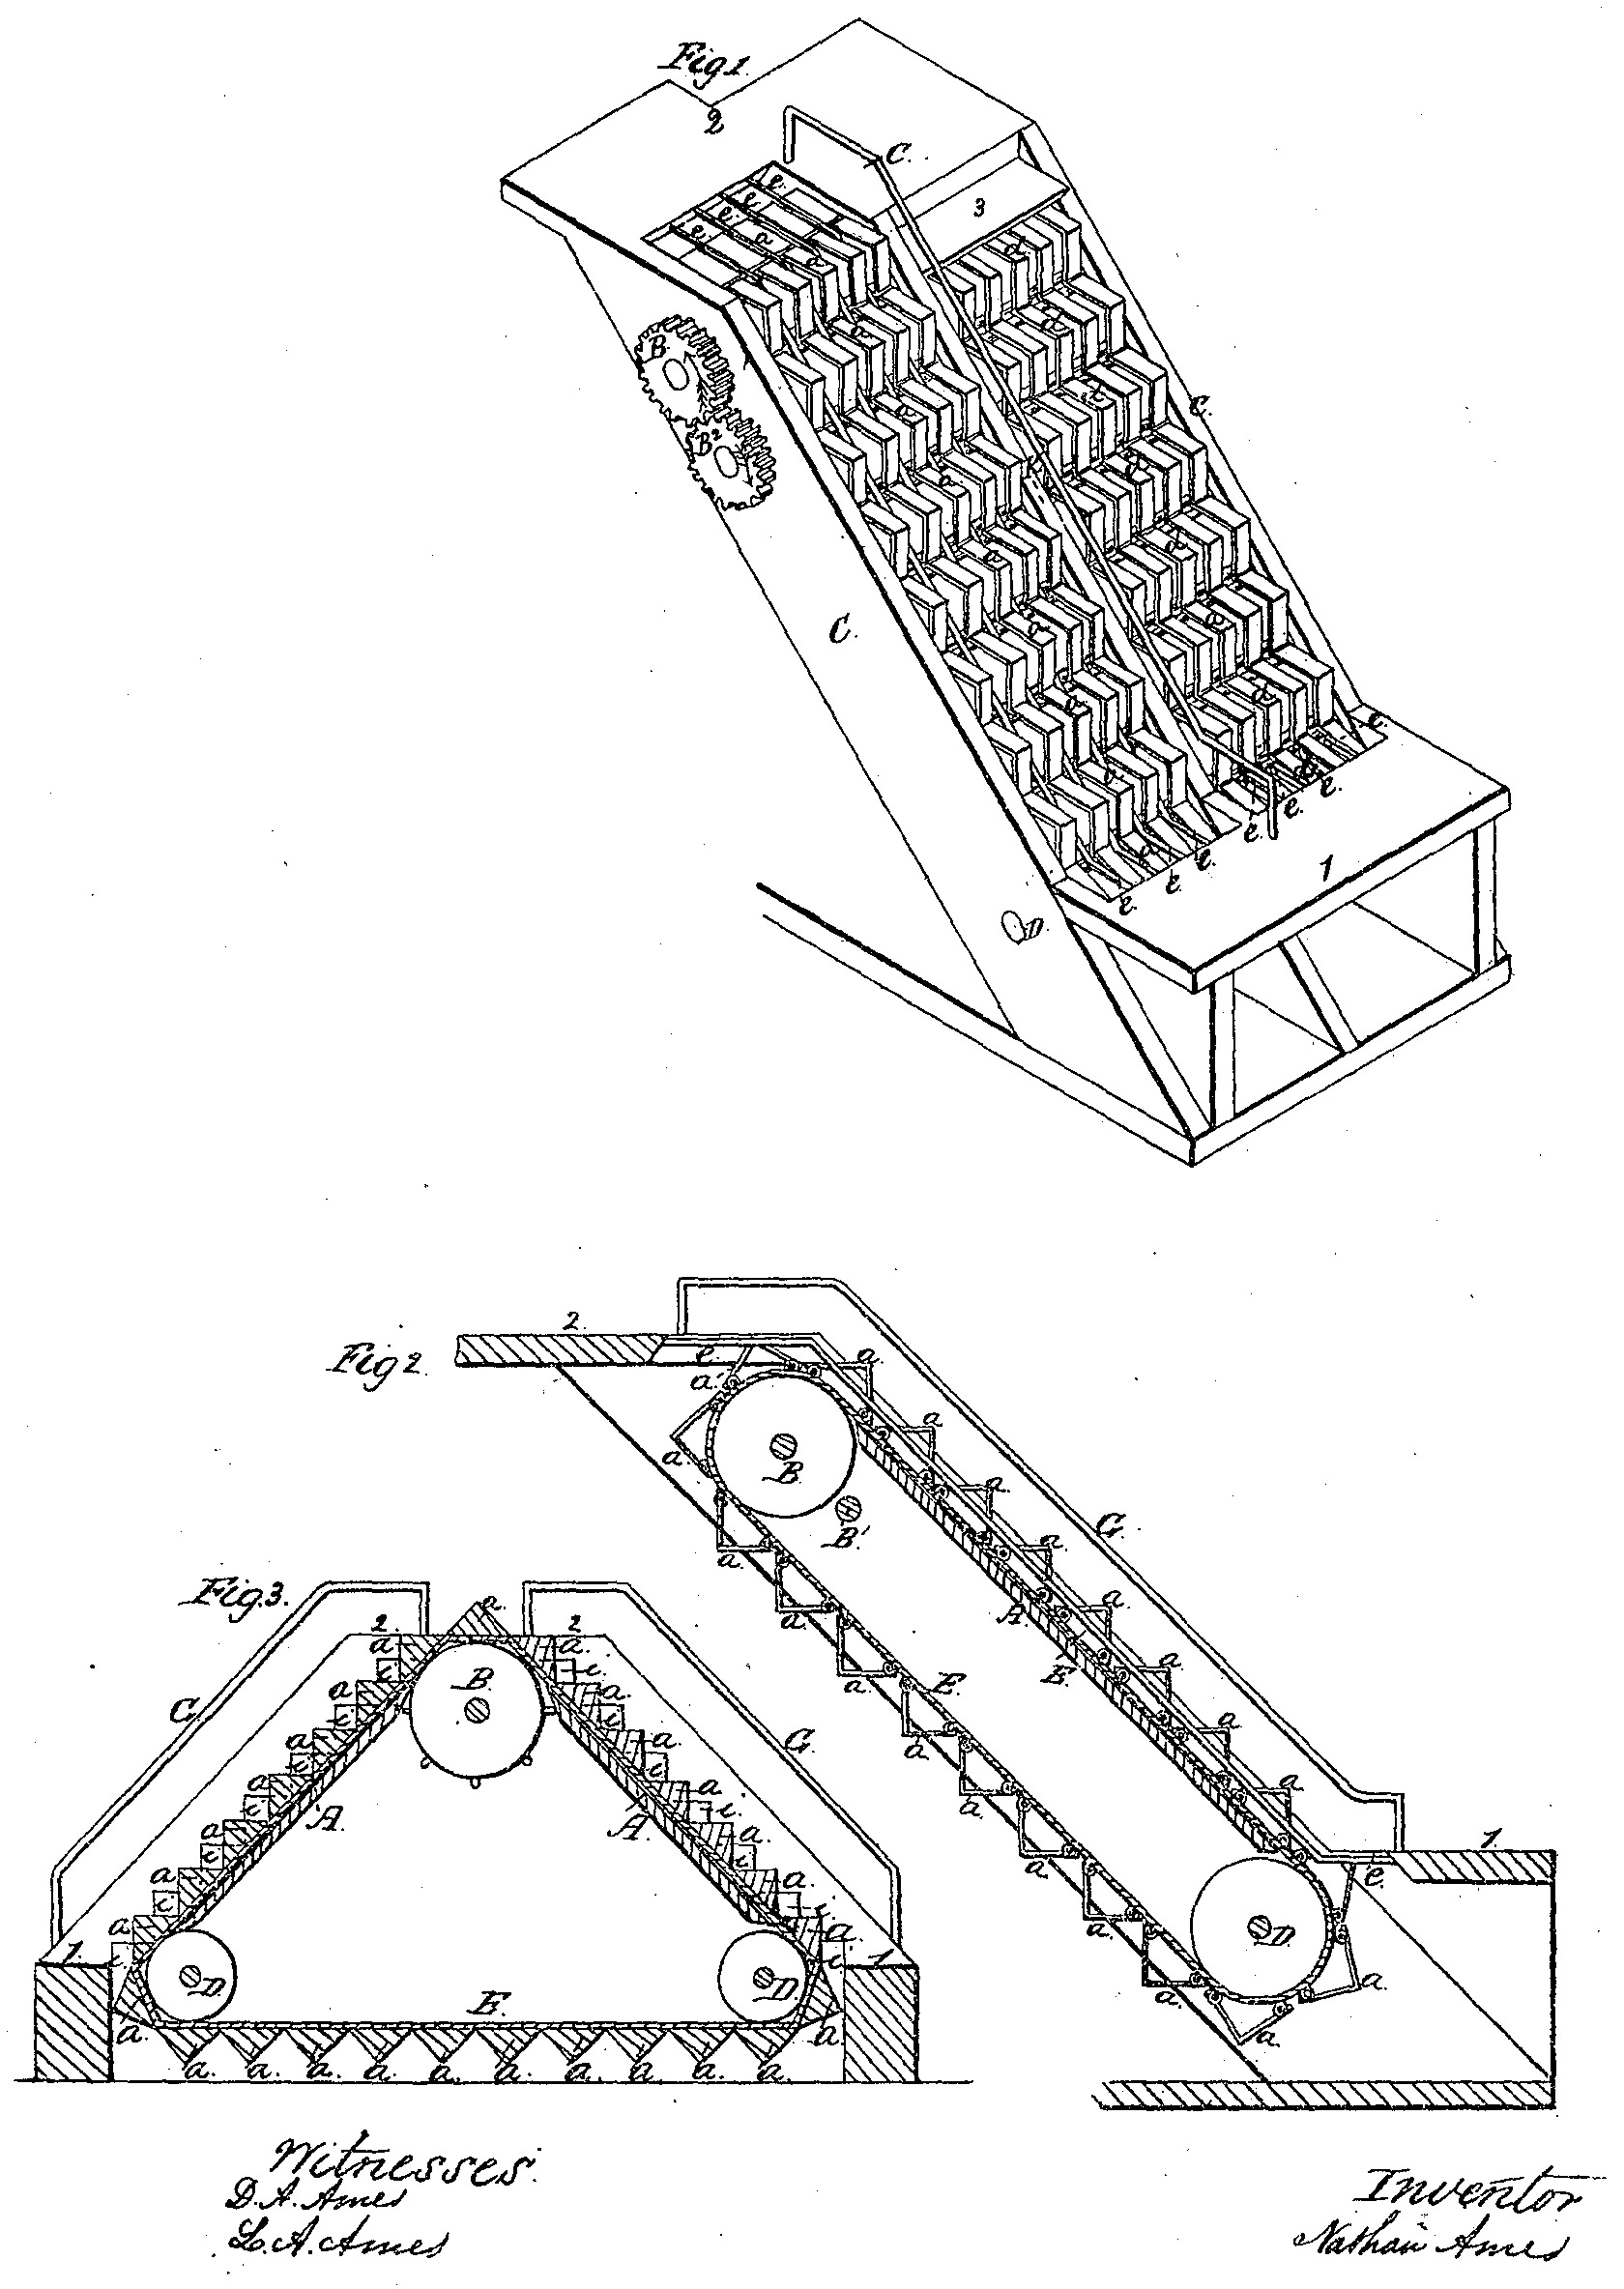 Image illustration of revolving stairs us patent 25076 issued illustration of revolving stairs us patent 25076 issued to nathan ames 9 august 1859g ccuart Choice Image